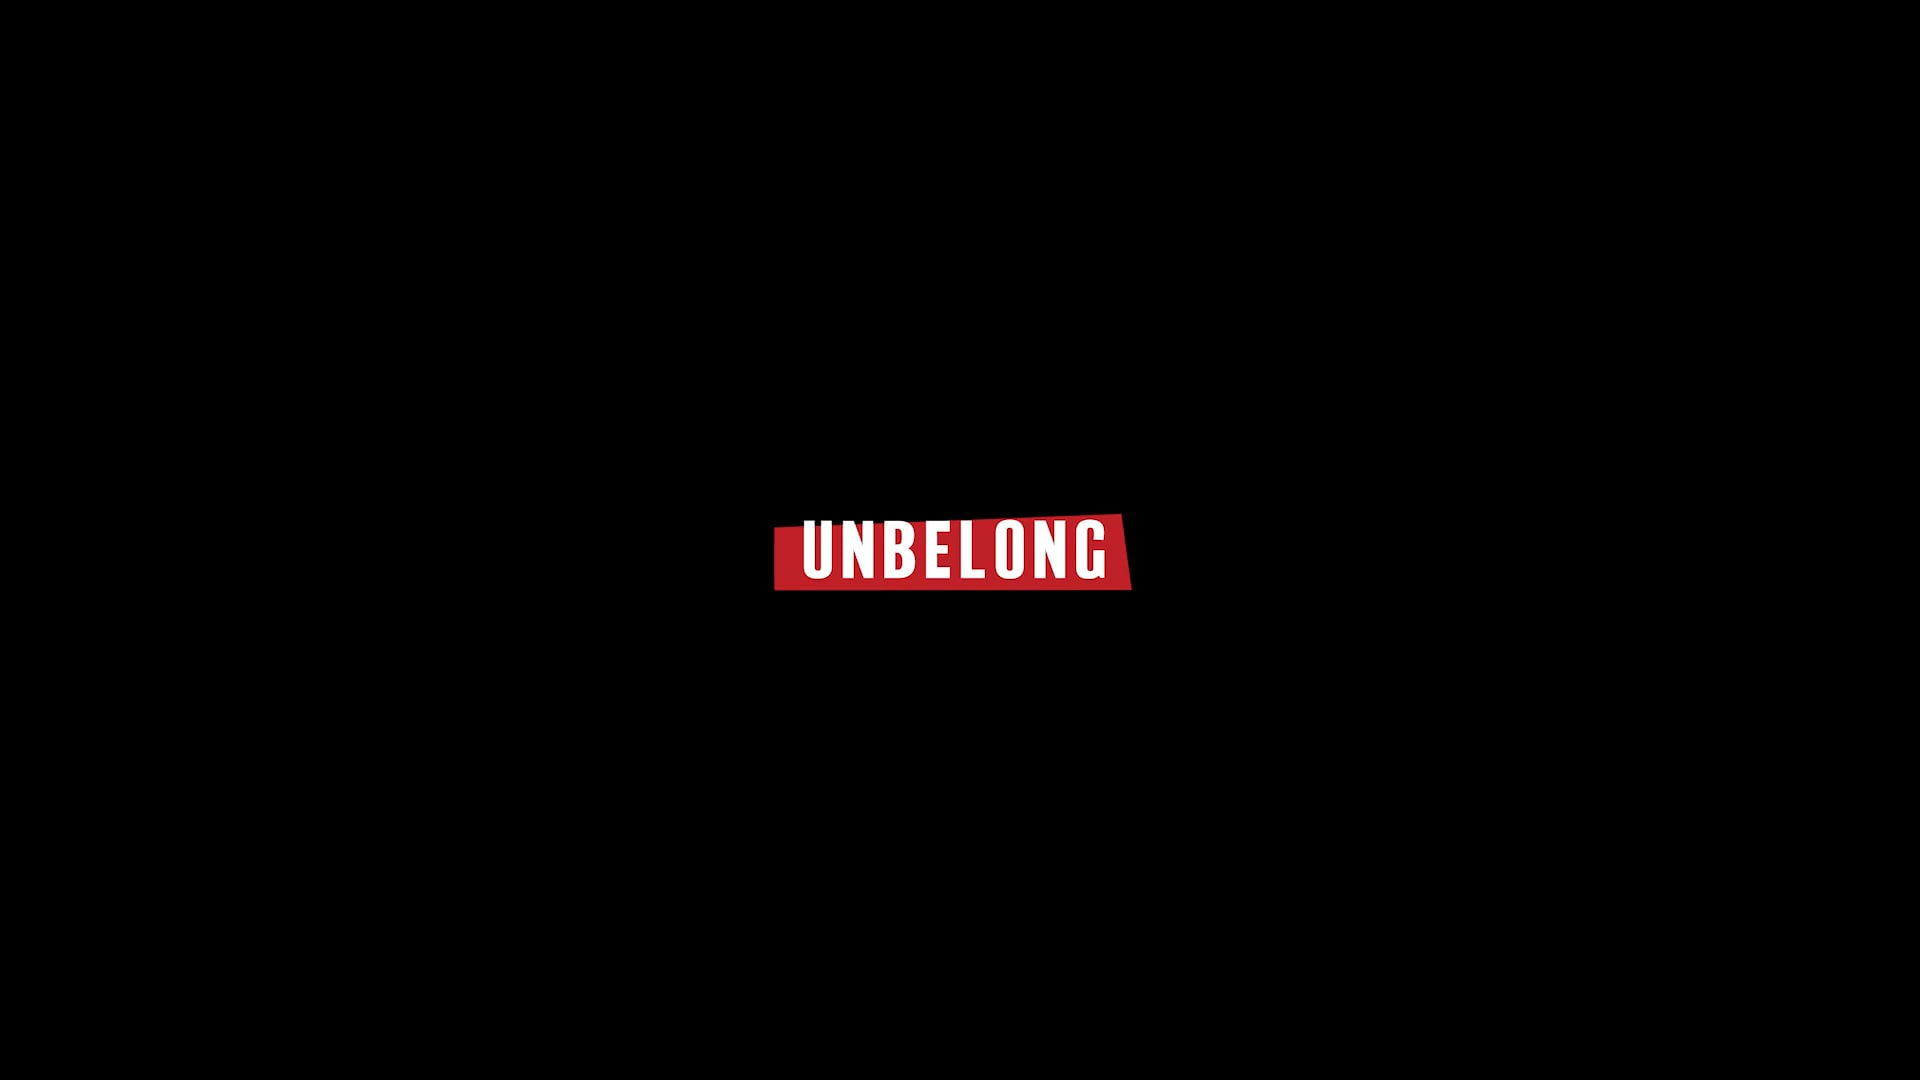 UNBELONG - Haith's second limited collection Campaign Video